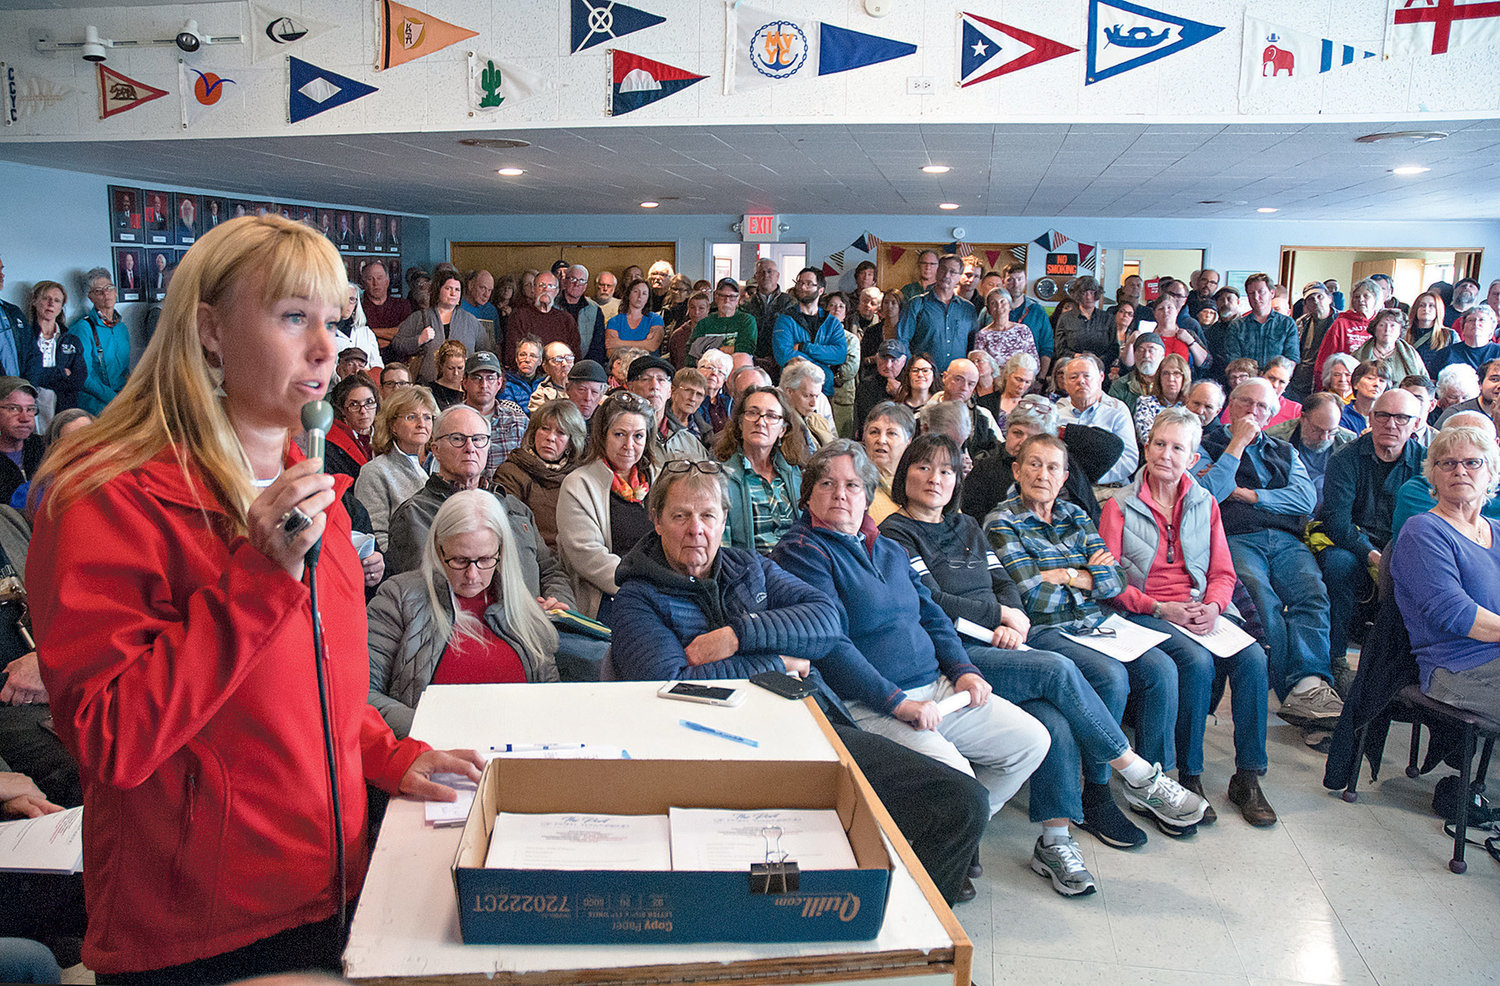 Kris Nelson speaks to Port of Port Townsend commissioners about the adverse impacts replacing the south jetty at Point Hudson would have to downtown businesses during a special meeting at the Port Townsend Yacht Club on March 20.